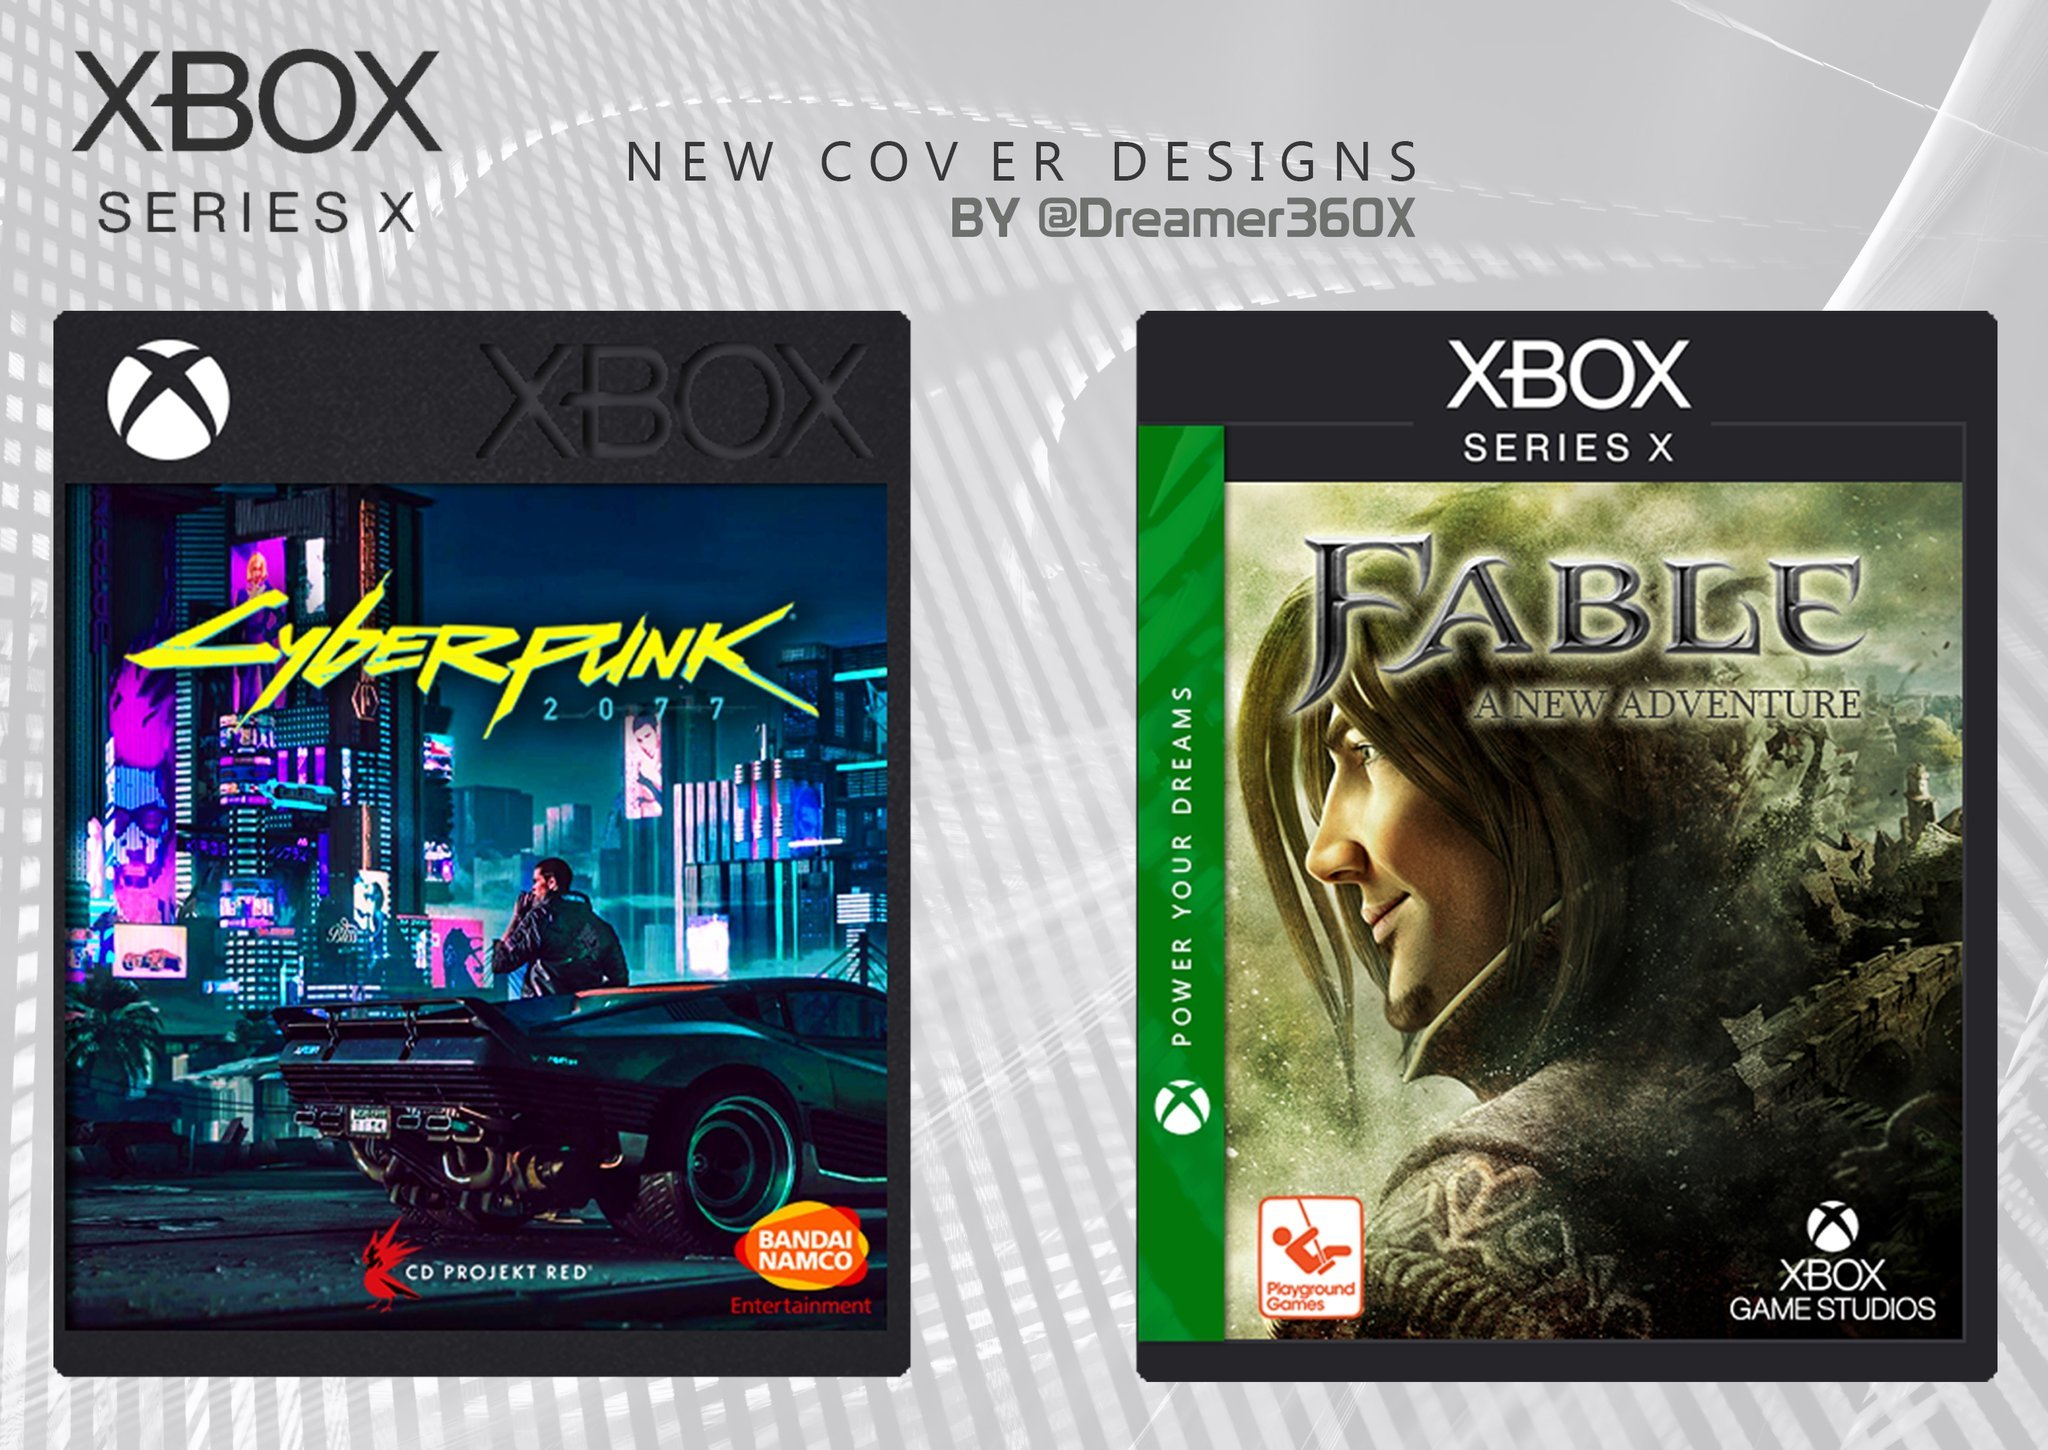 Fans Speculate On What The Xbox Series X Box Art Will Look Like Gamereactor